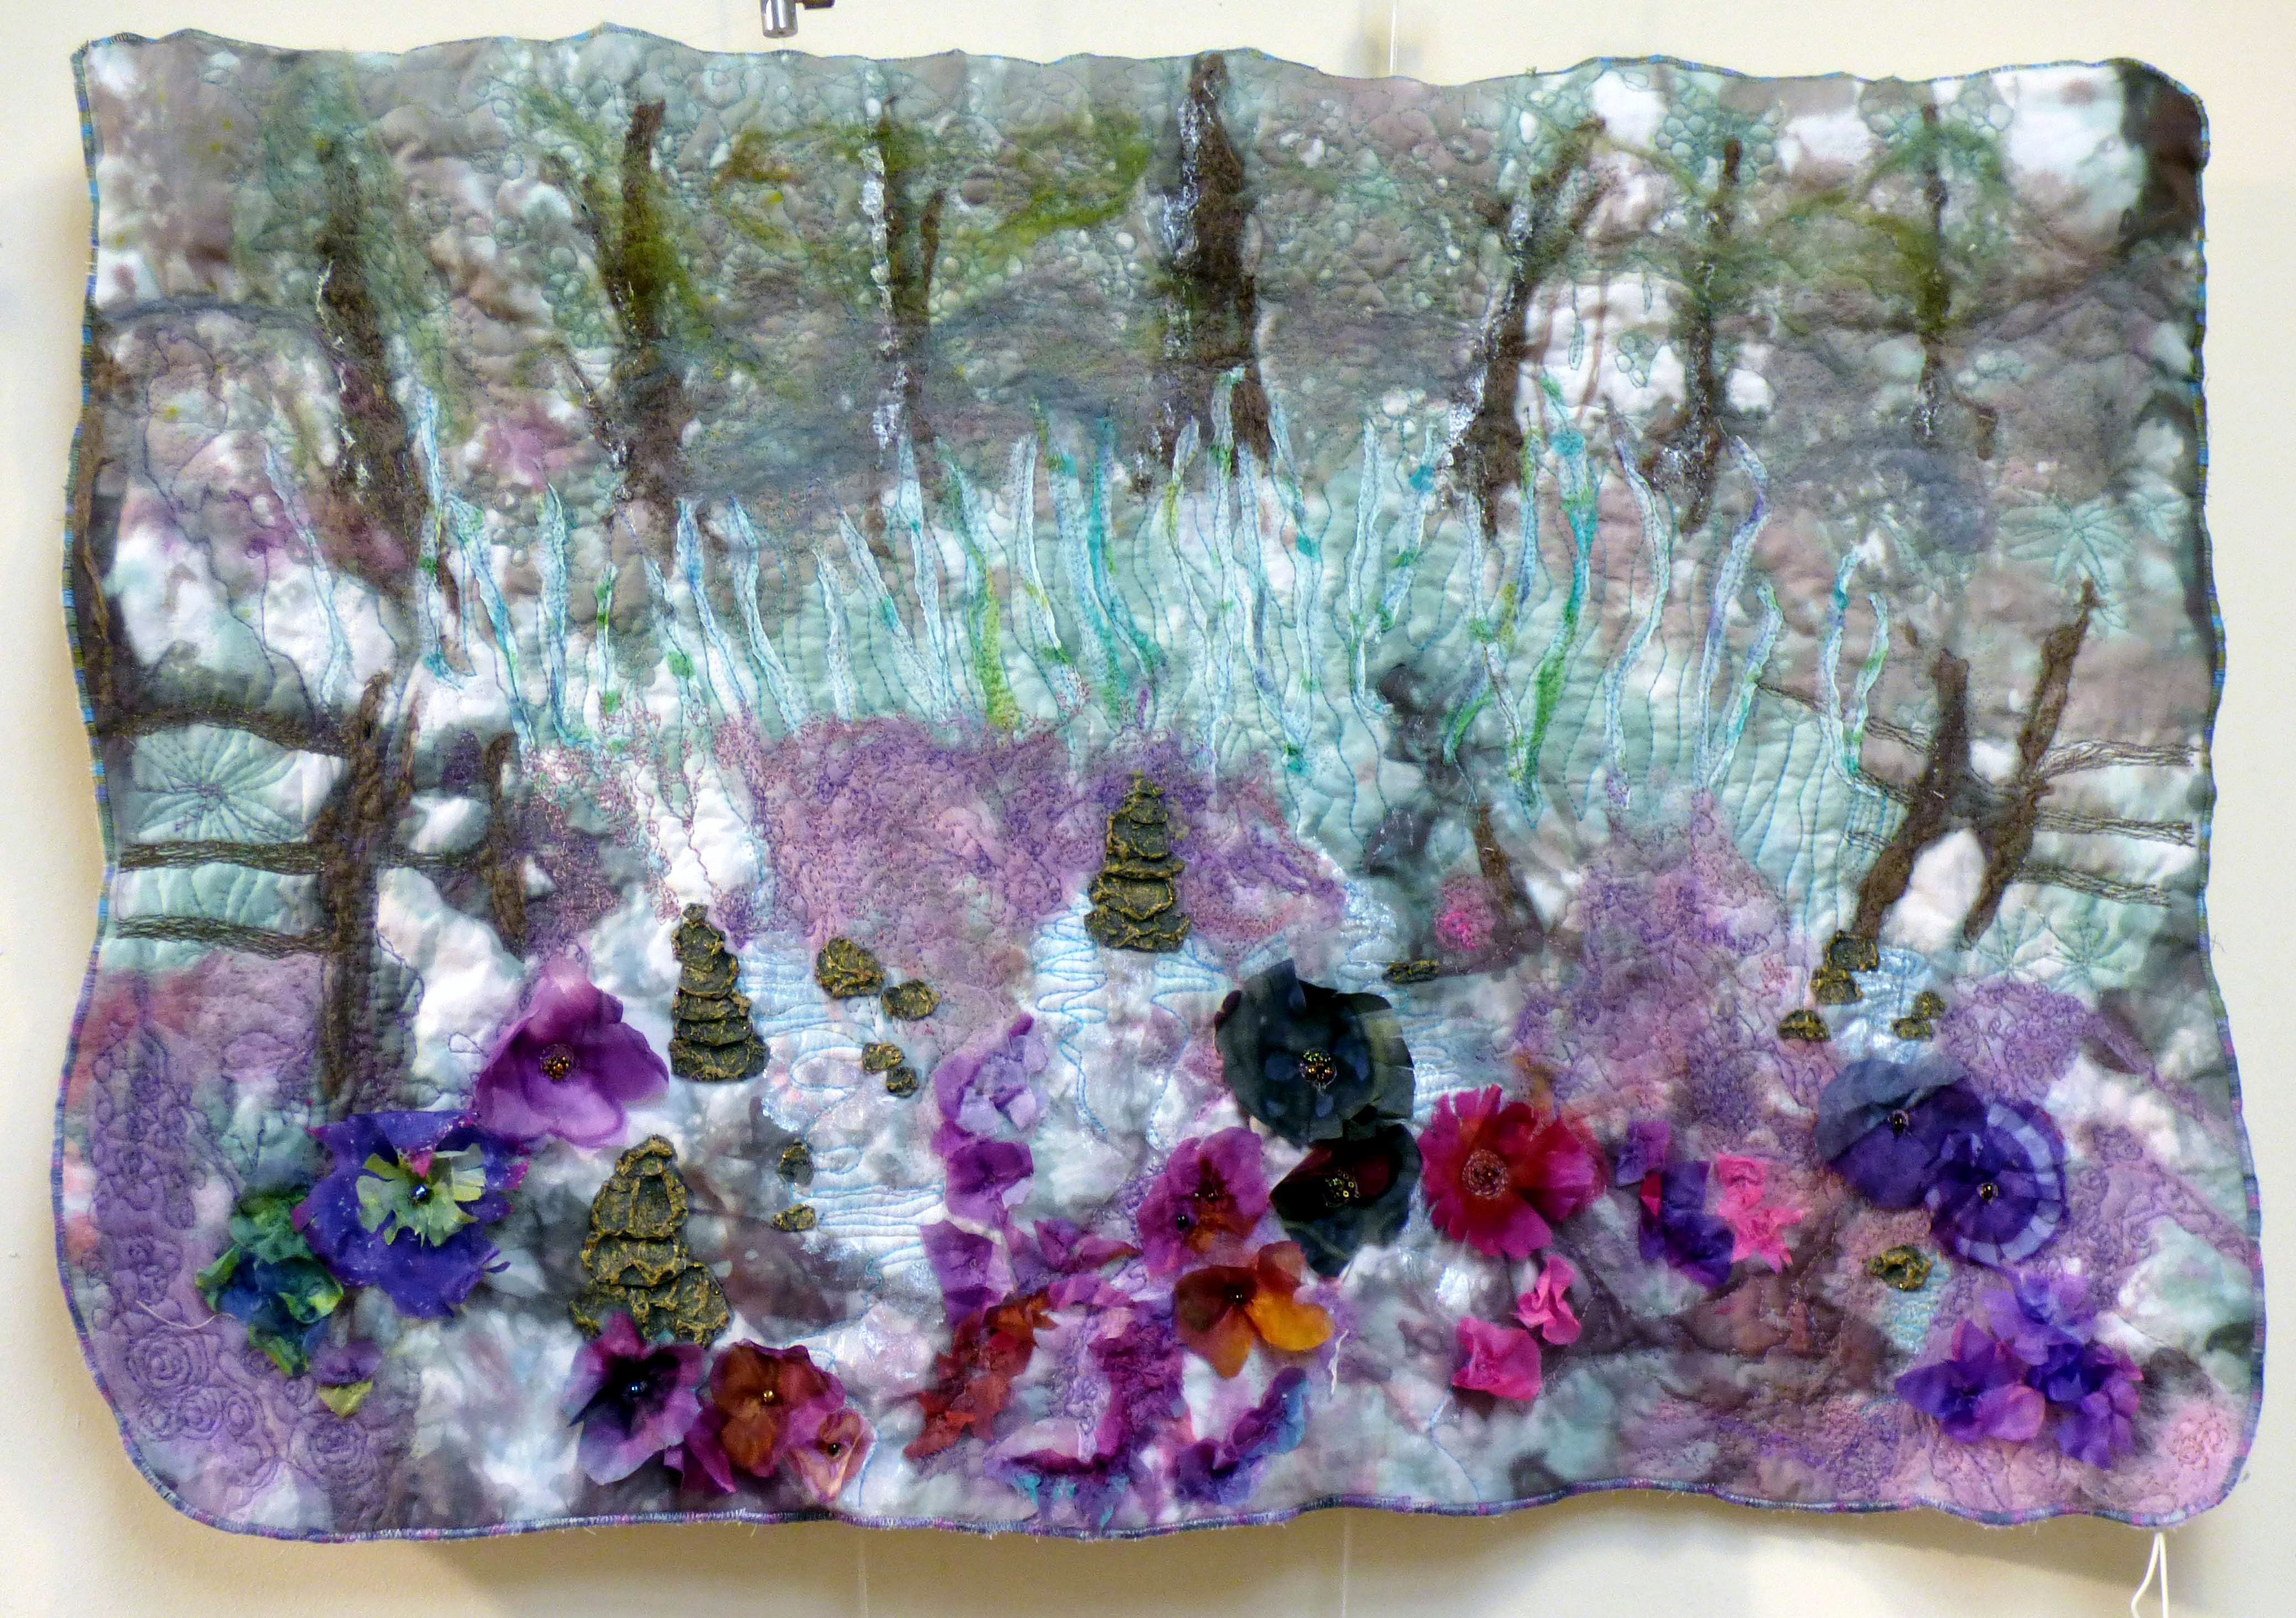 MOMENTS IN TIME by Sue Chisnall-Sumner, Natural Progression Textile Group, Jan 2020